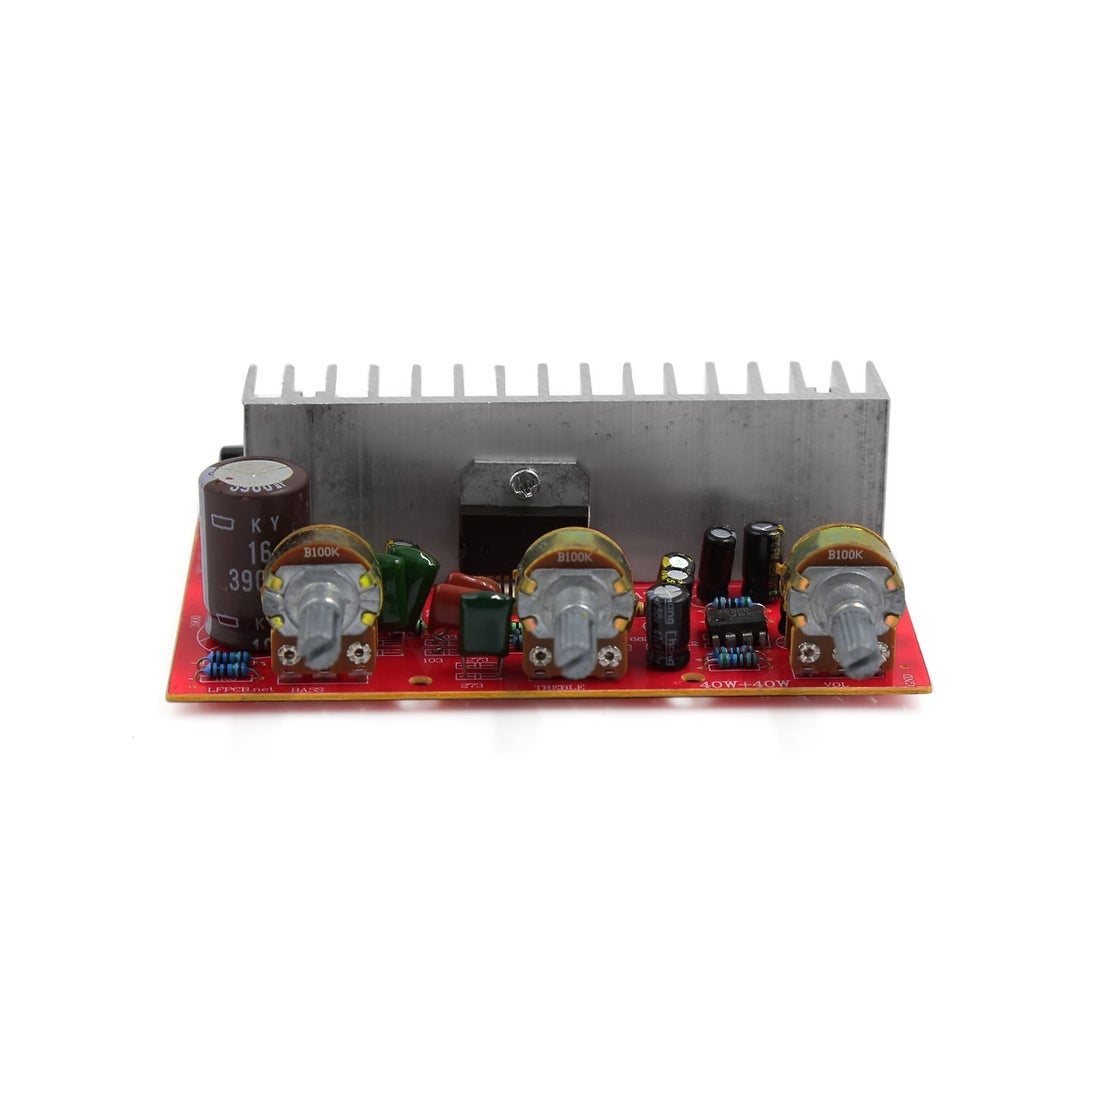 Shop Unique Bargains 40w Lfe Subwoofer Audio Hi Fi 2 Channel Car Circuit Amplifier Stereo 2channel Board Power Free Shipping On Orders Over 45